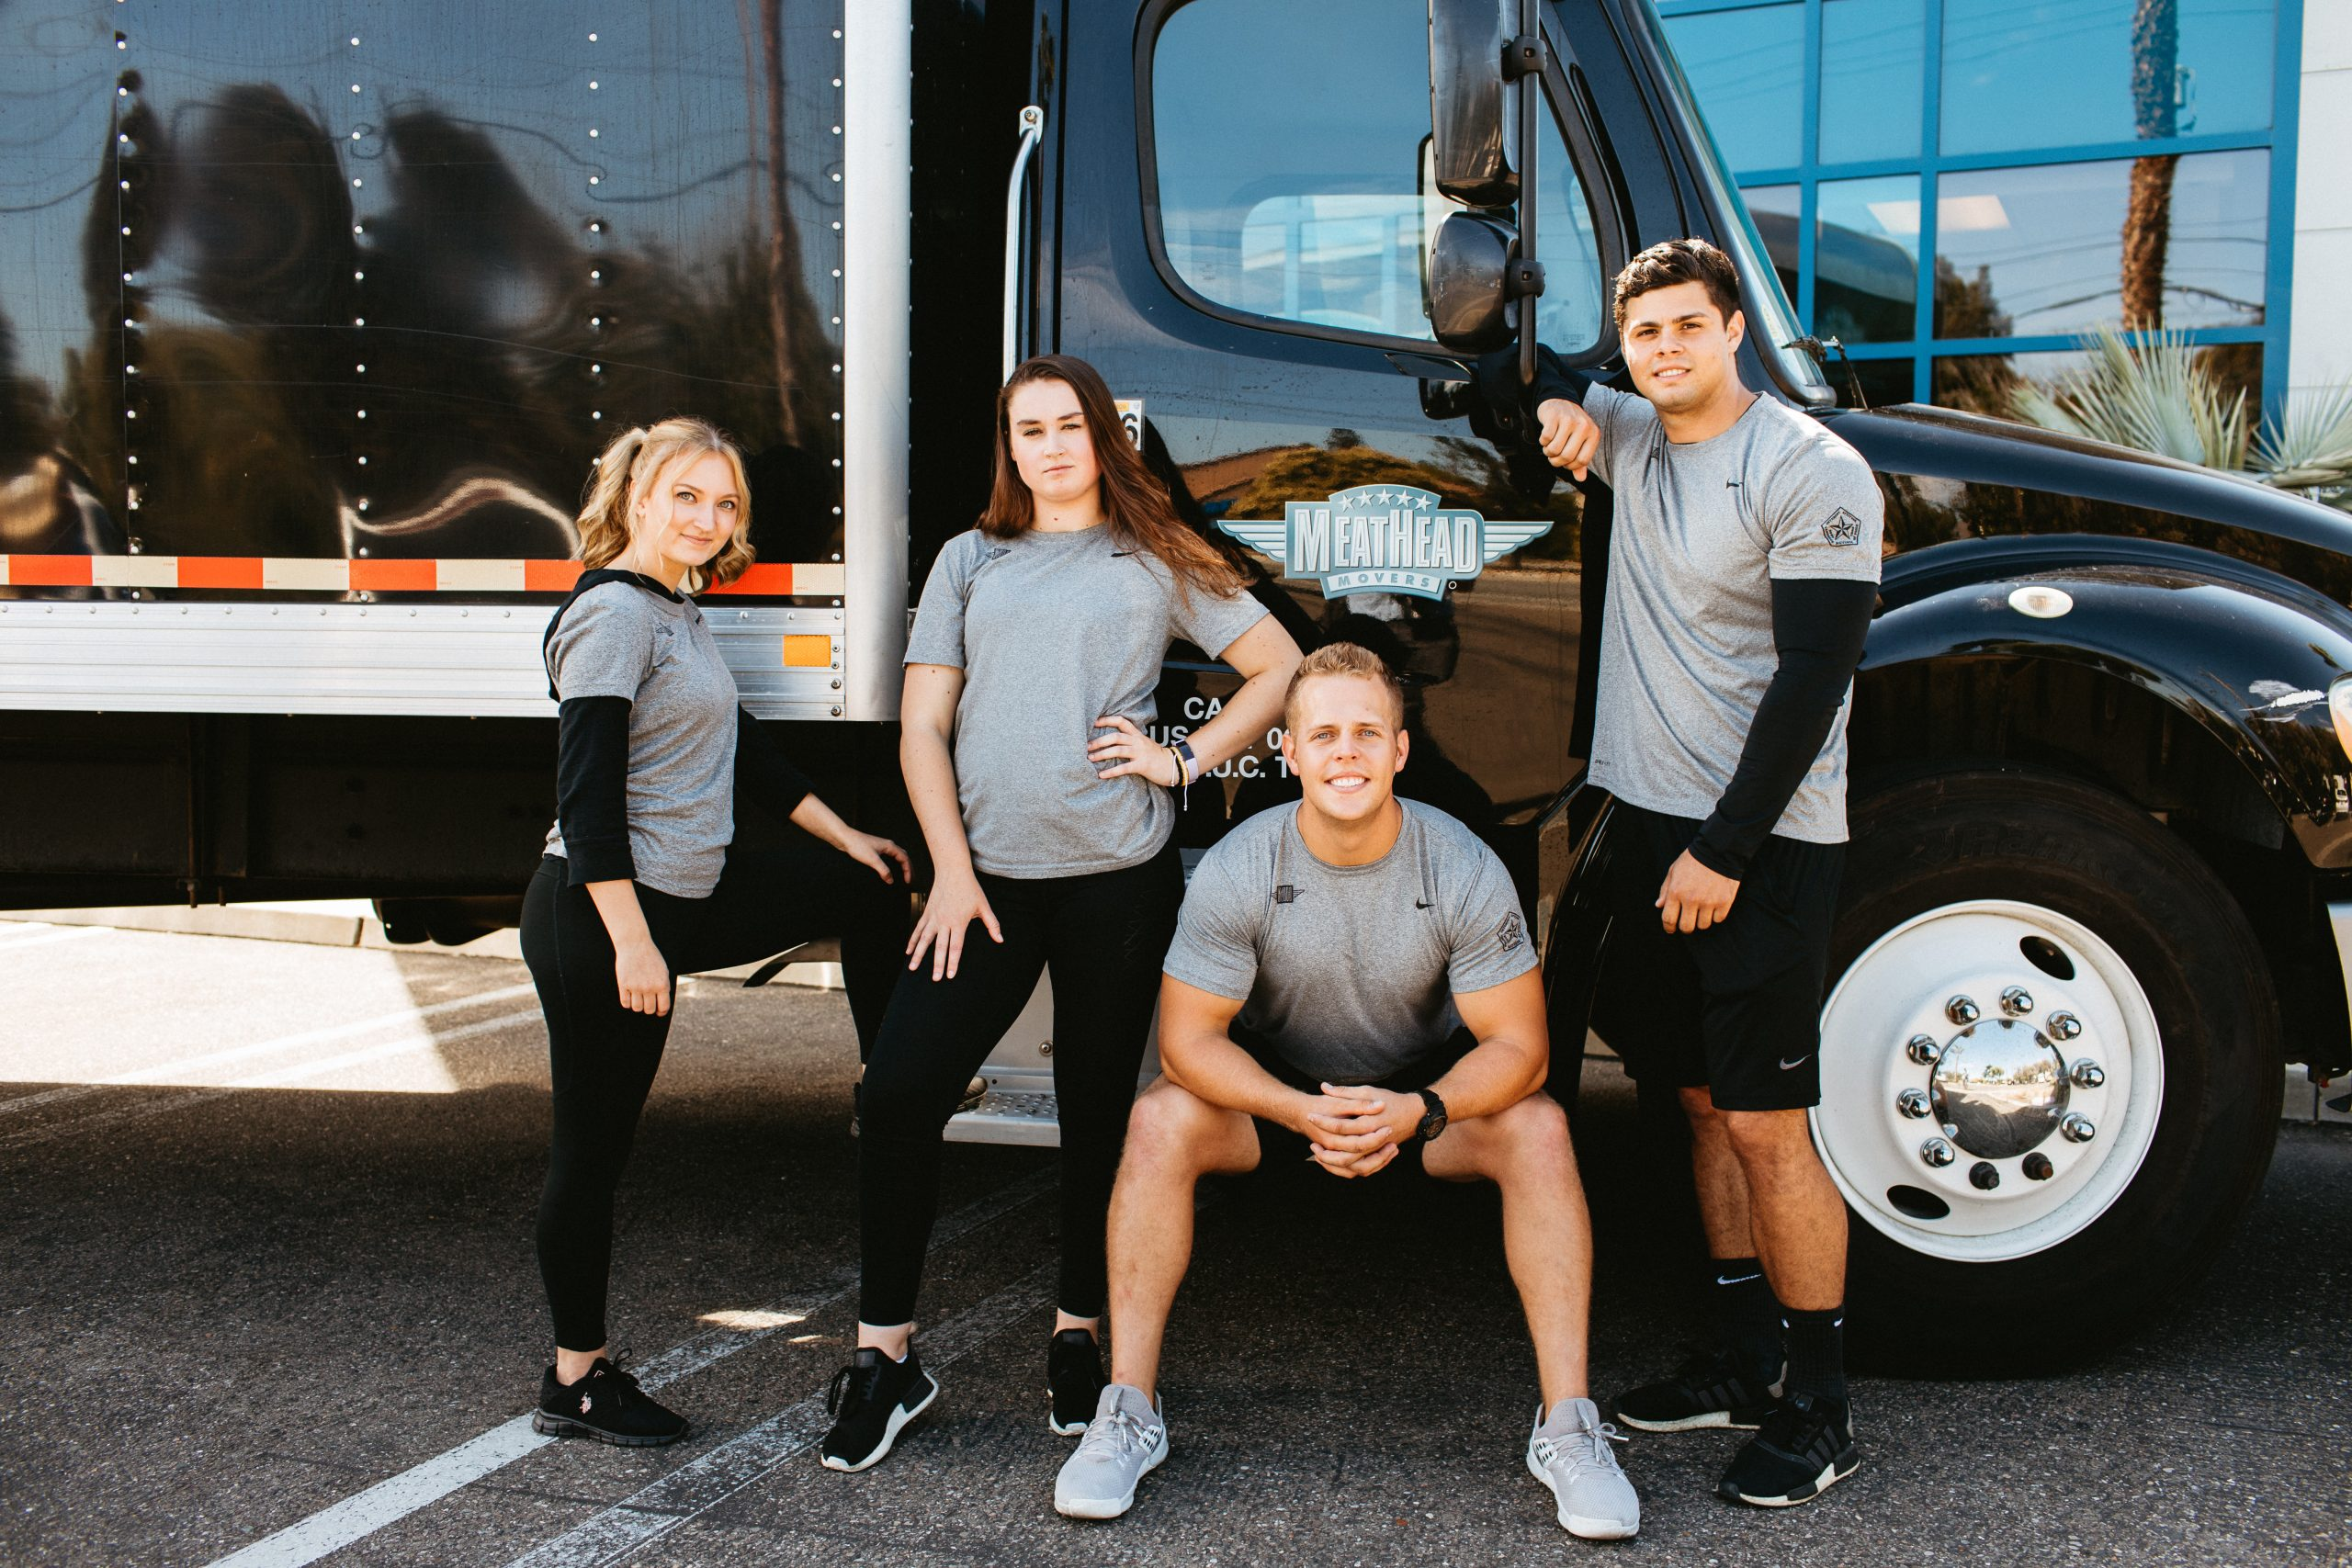 Student athlete movers standing by a moving truck.